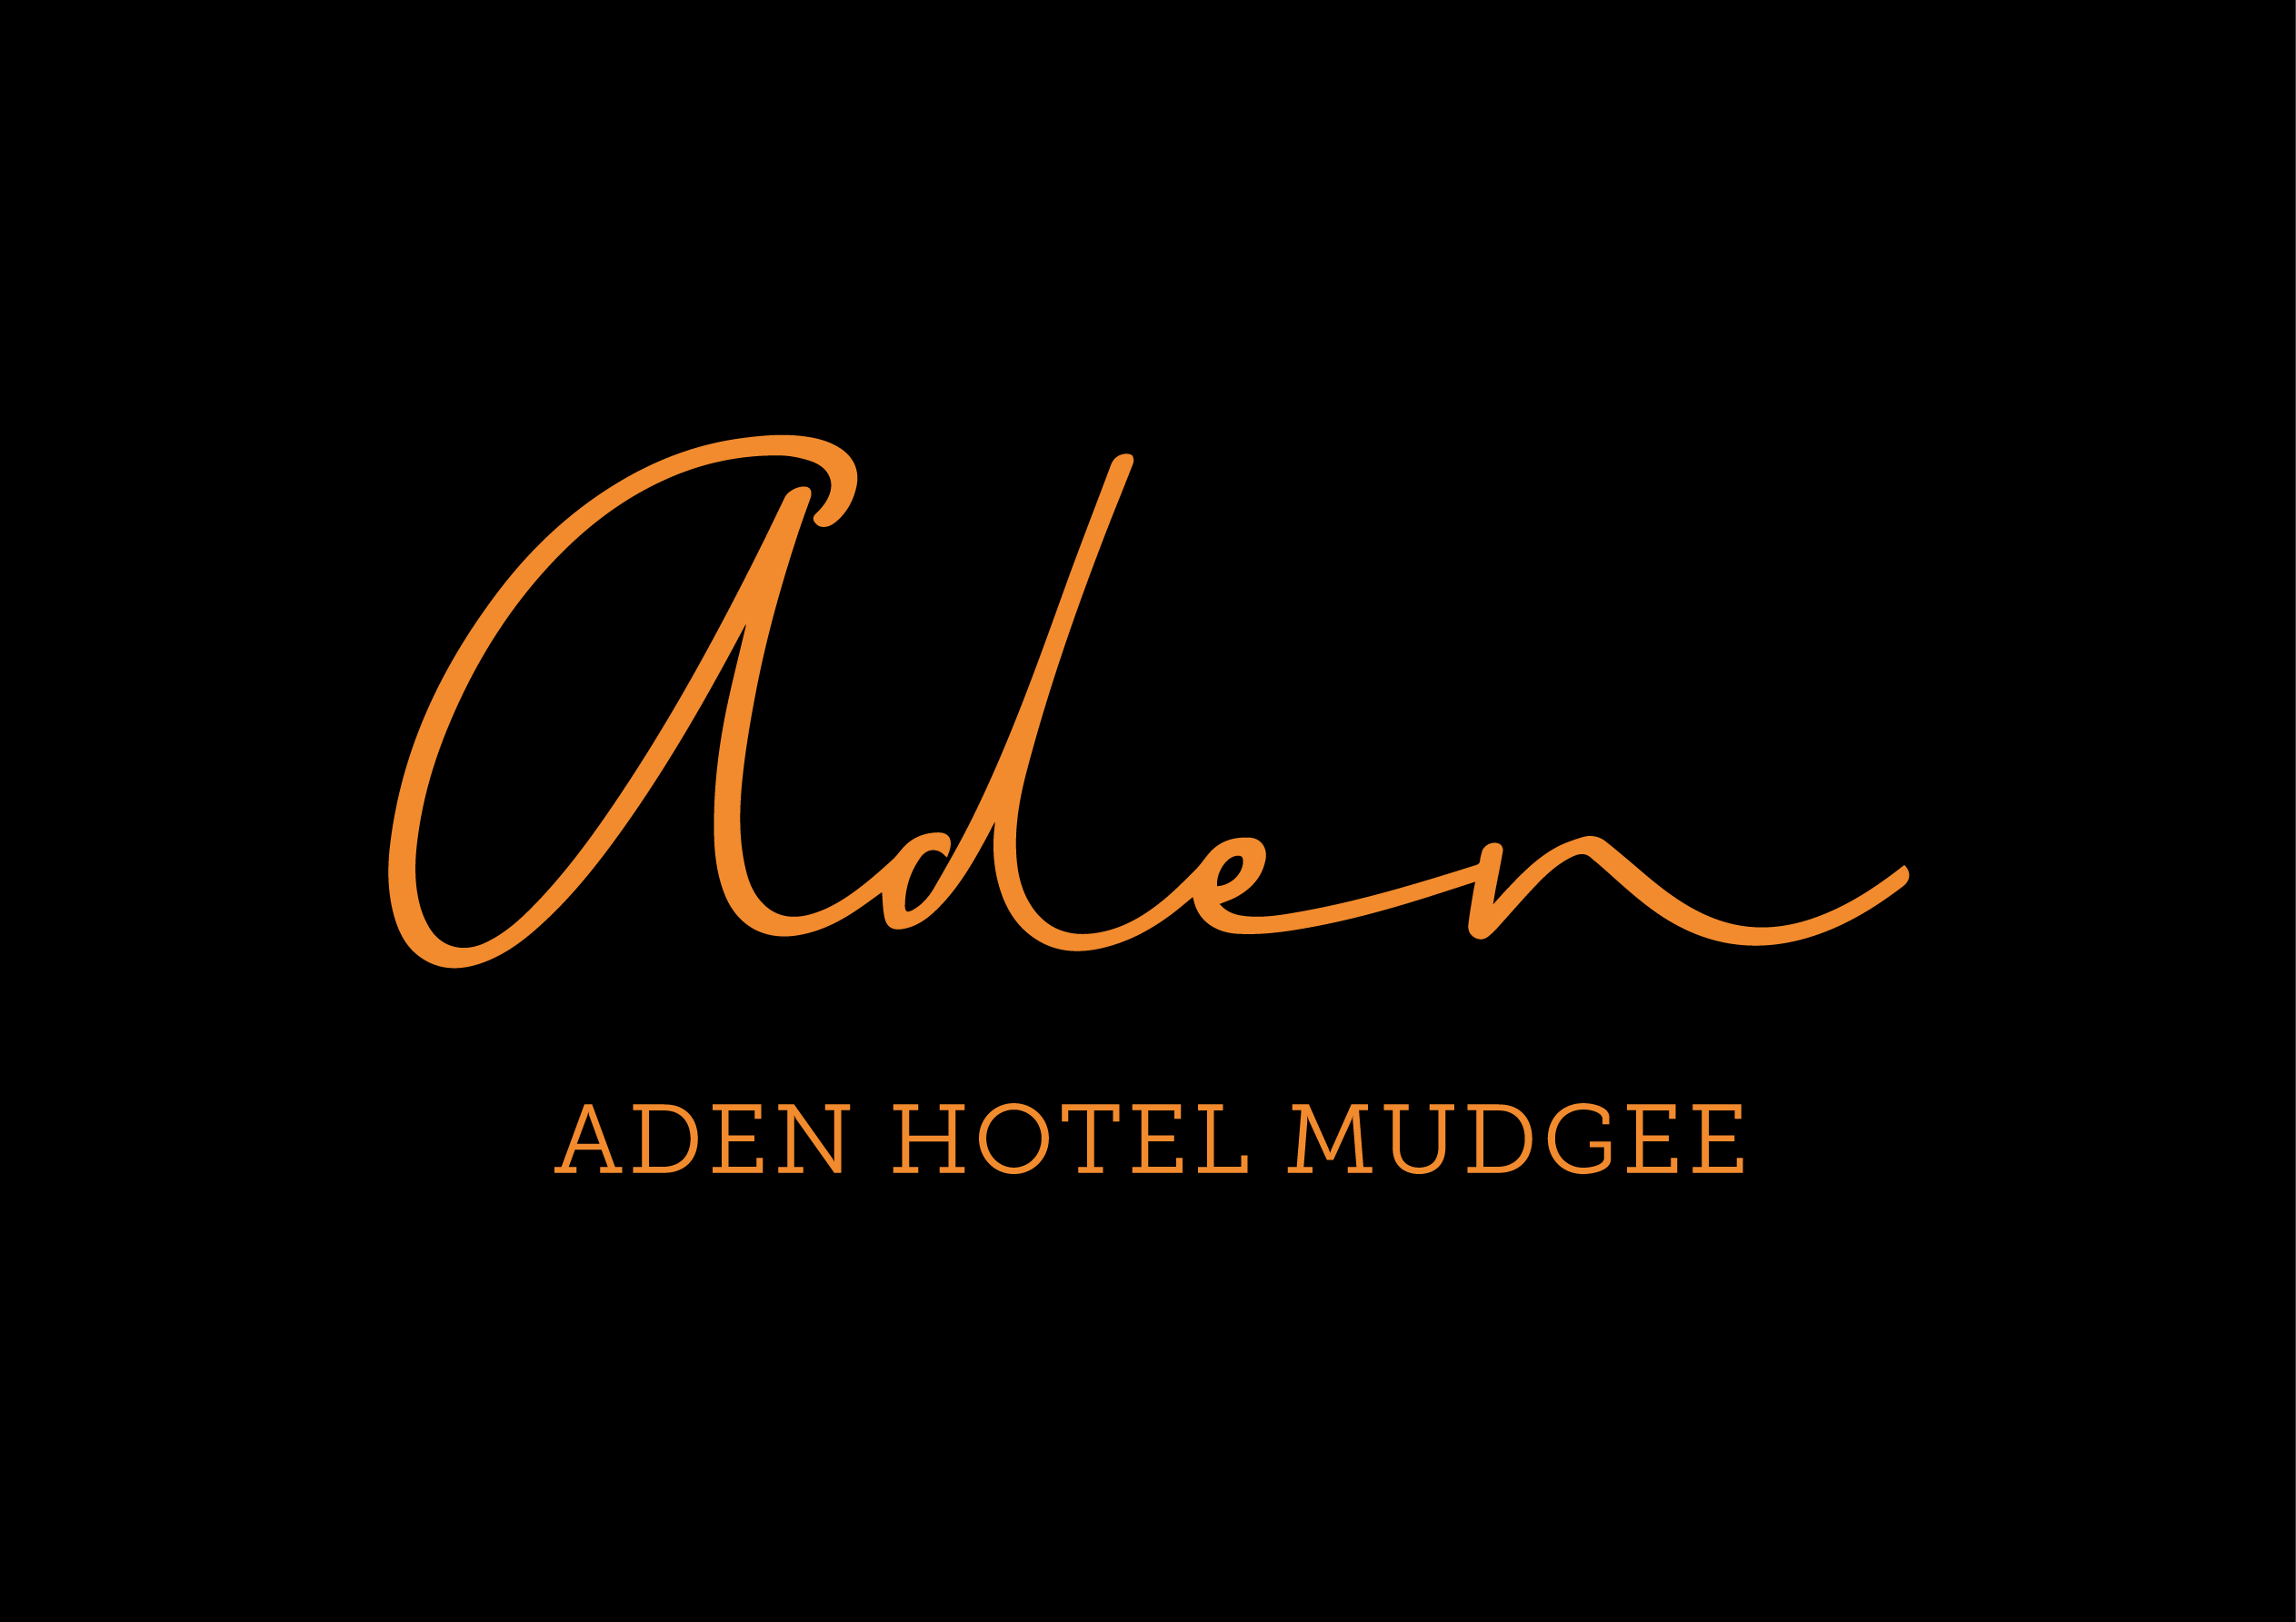 Comfort Inn Aden Hotel Mudgee - Tweed Heads Accommodation